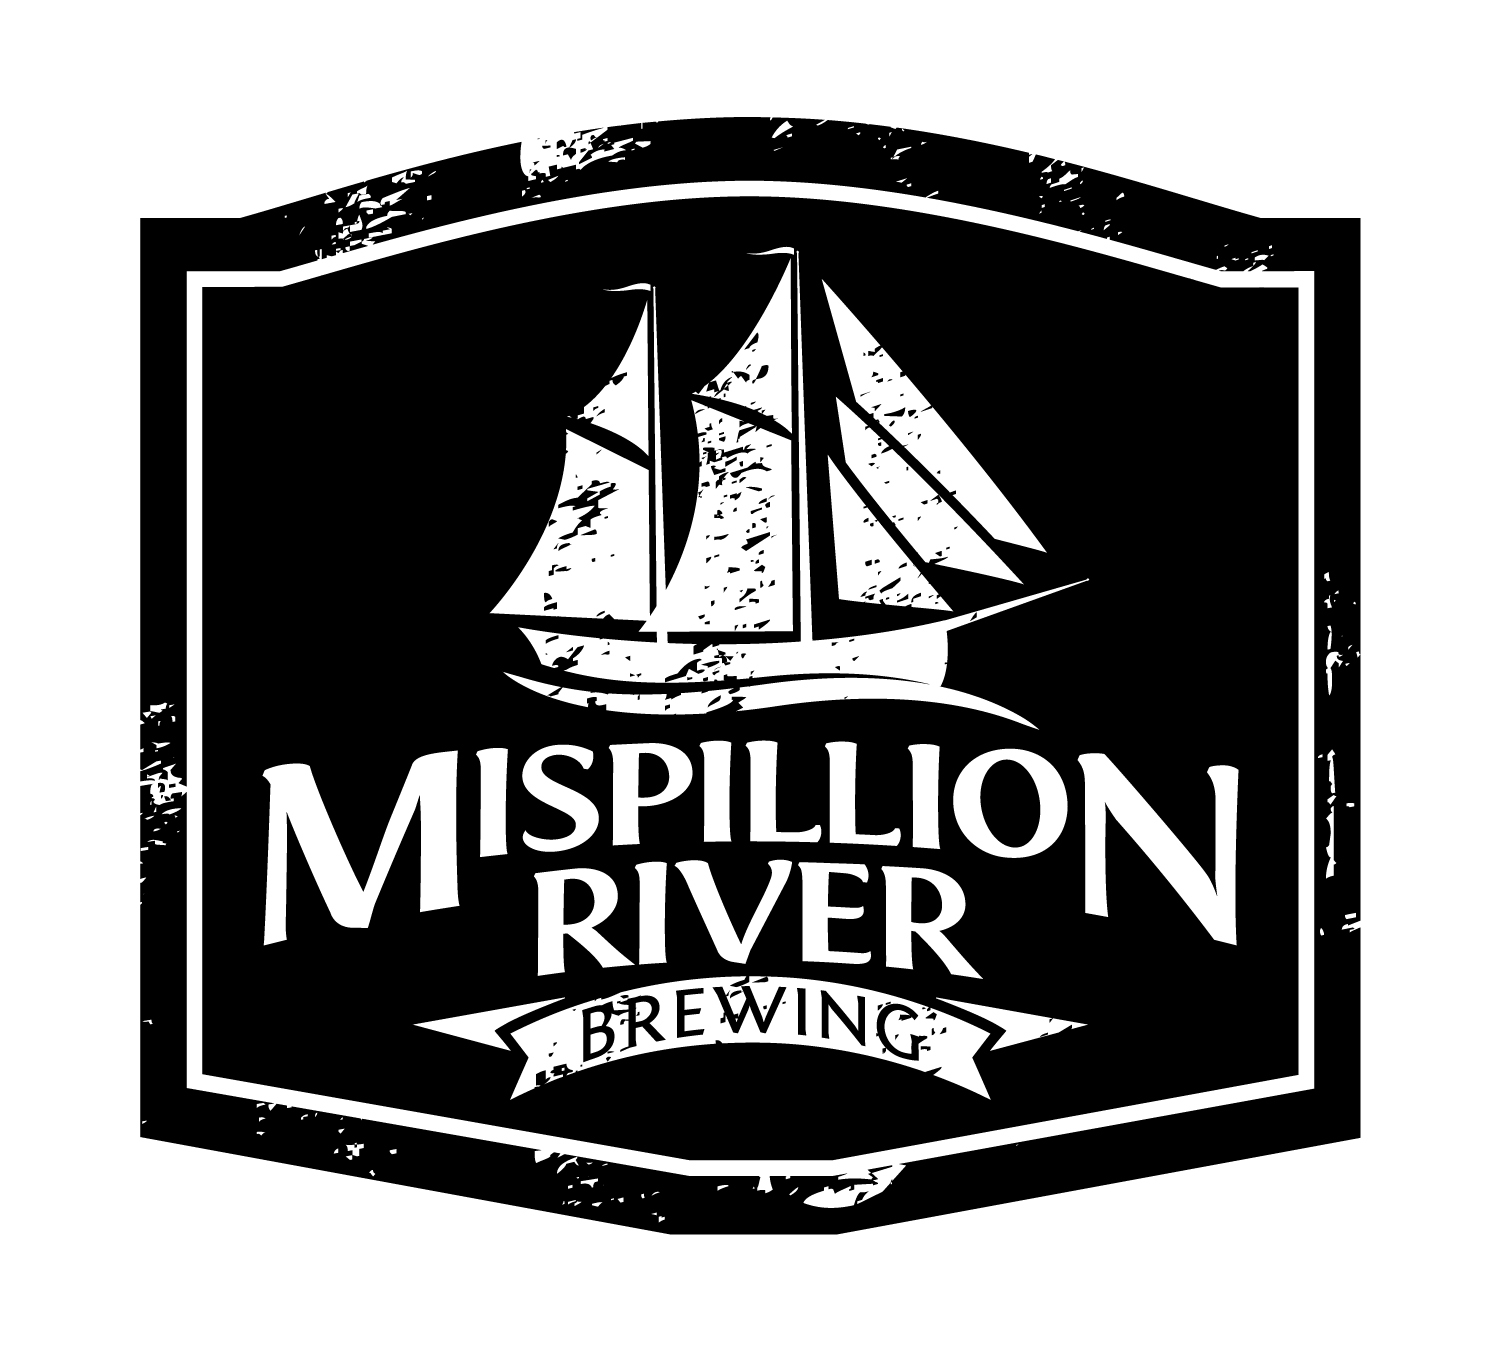 Mispillion River Brewery